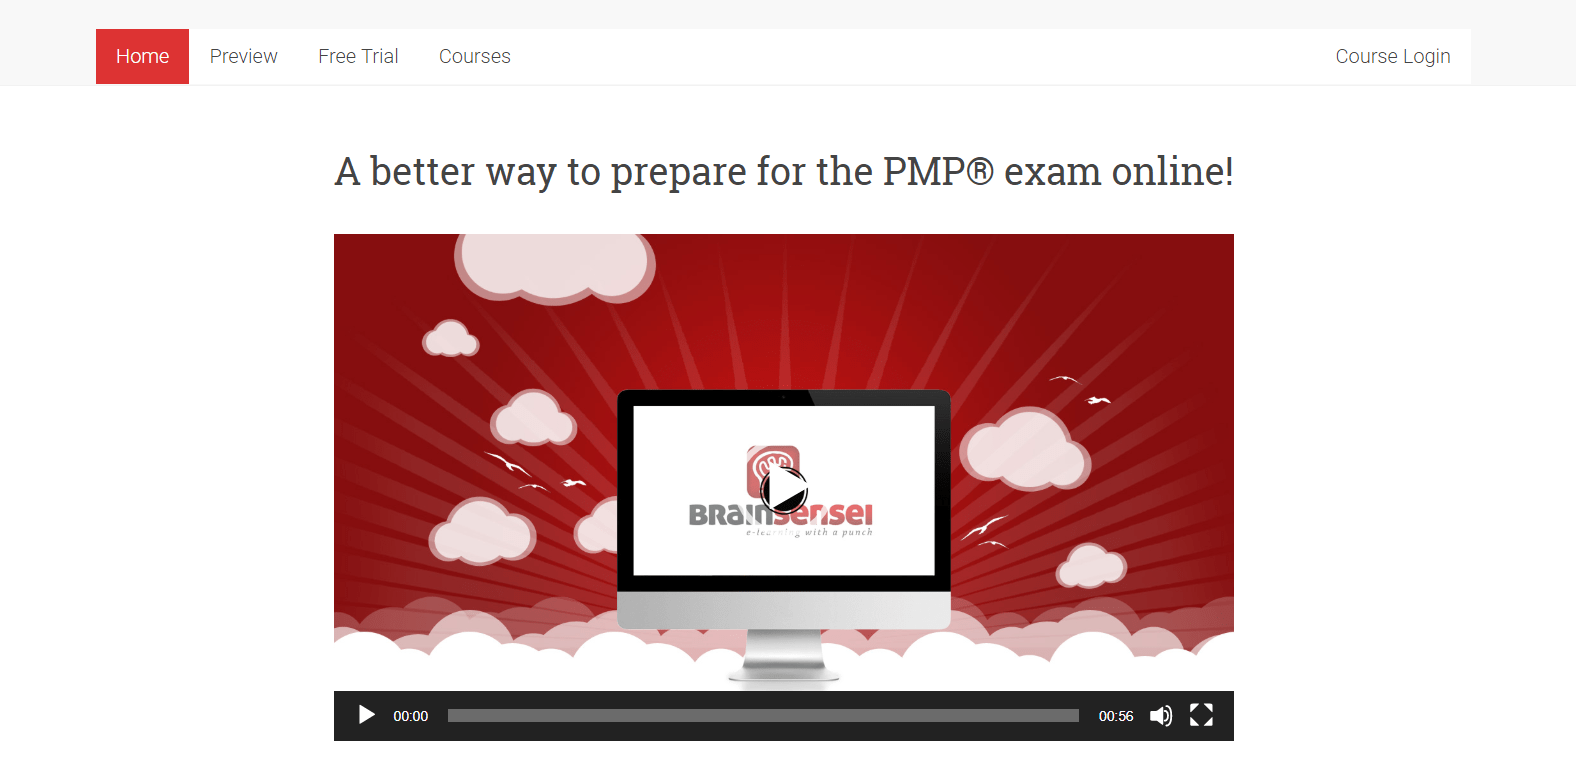 Brain Sensei Courses Review- A better way to prepare for the PMP® exam online